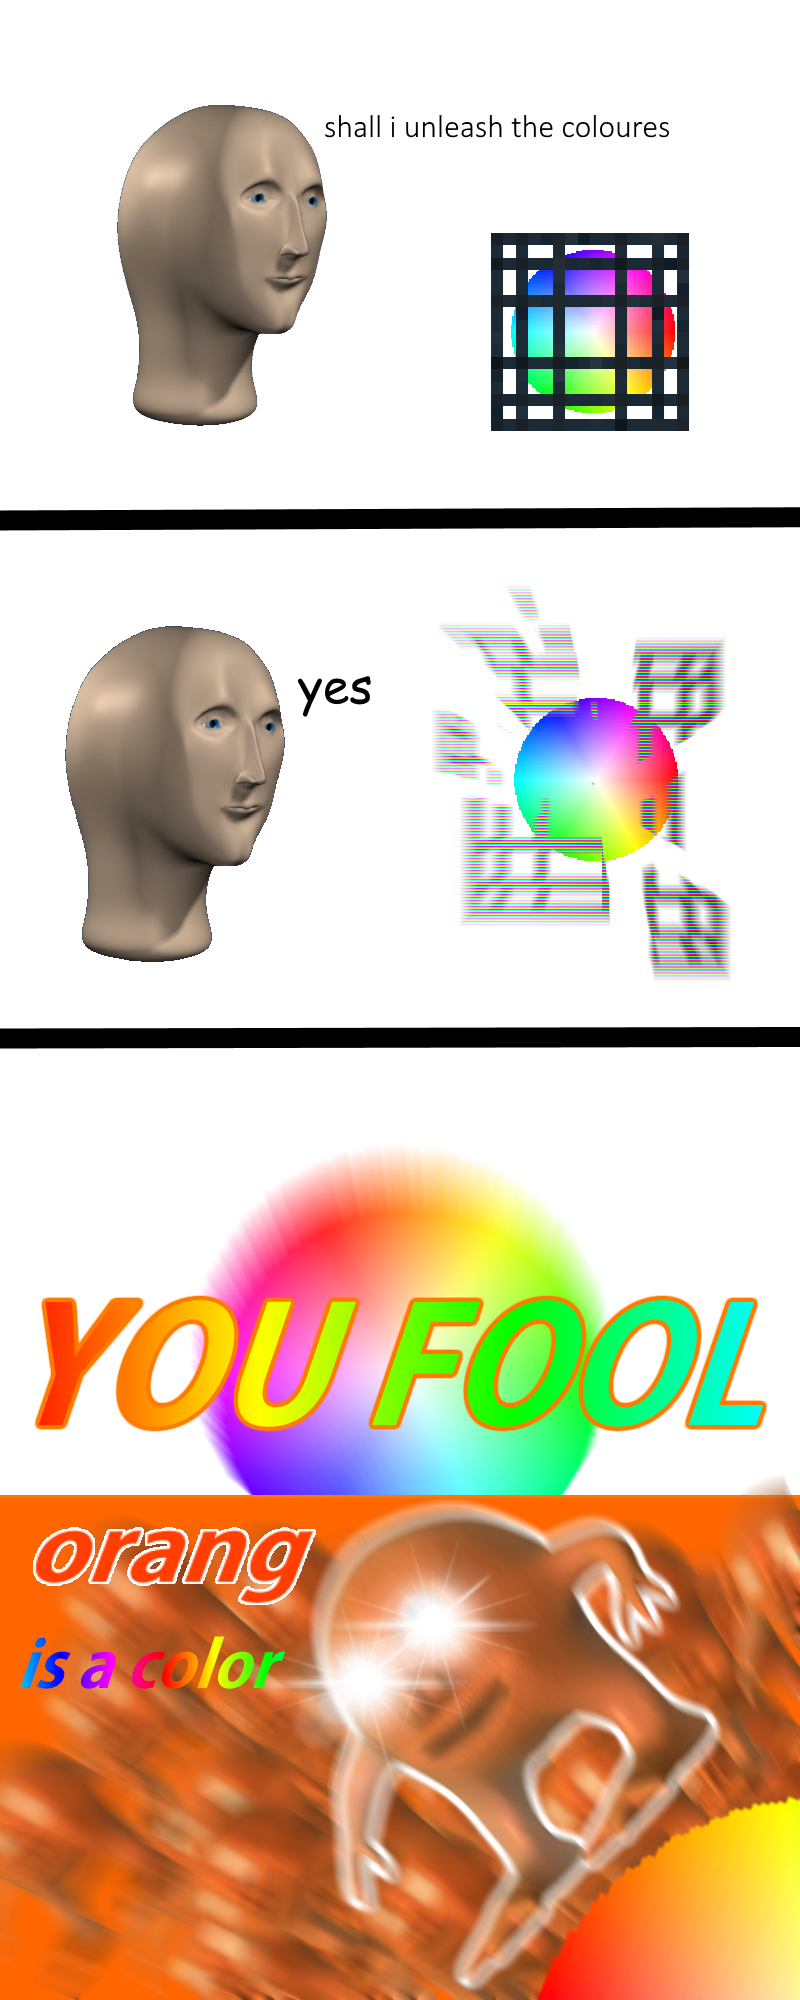 Surreal meme - Text - shall i unleash the coloures yes YOU FOOL orang is a color